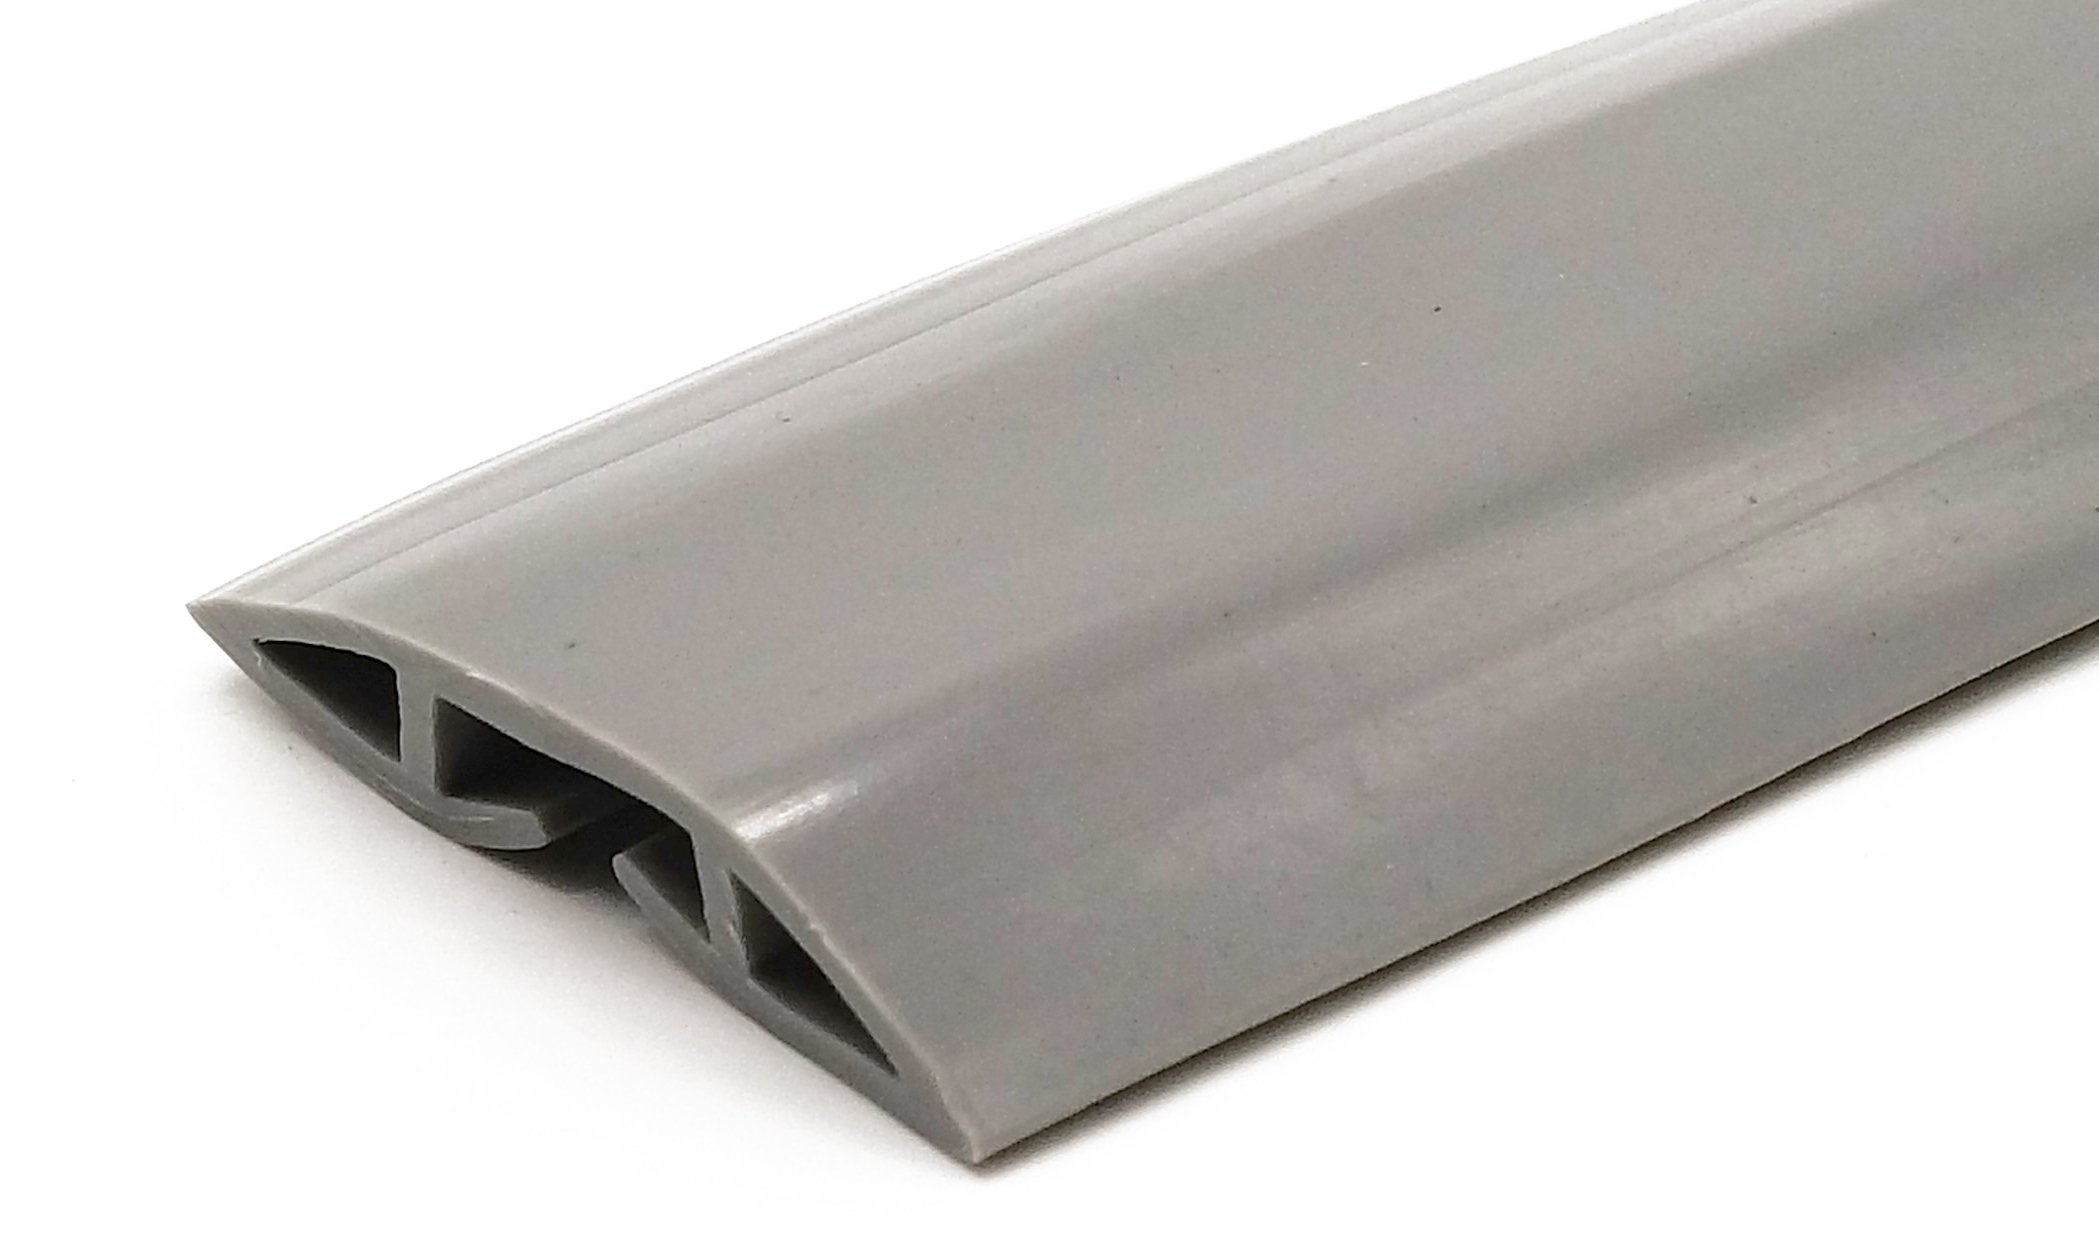 Gray PVC Floor Cord Protector - 2 Meters (6 Feet 6 Inches) in Length - Flexible to Cover Cables, Cords and Wires - Great for the Home, Office, Warehouse or Concerts - Easy to Unroll and Open